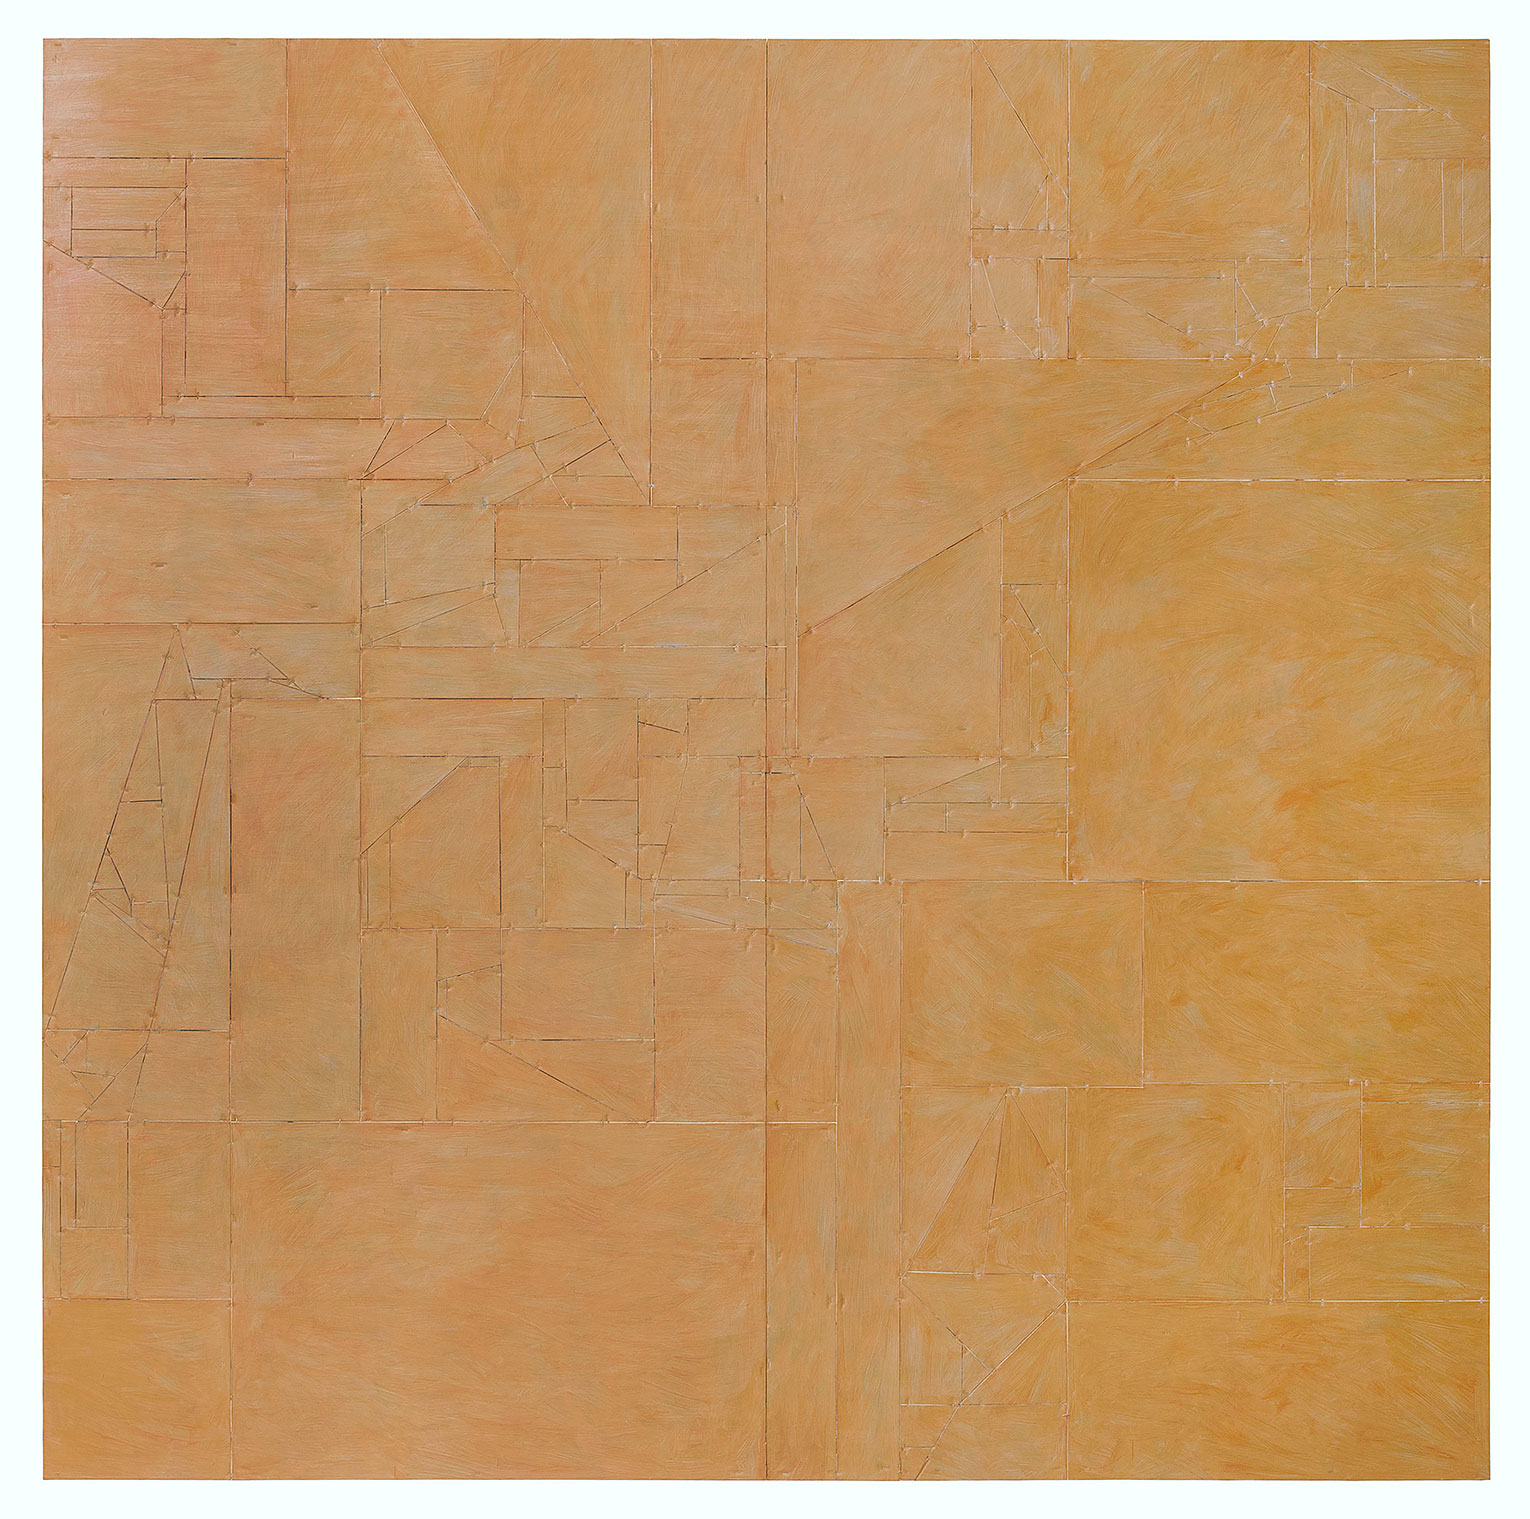 <b>Title: </b>Untitled (Vanish) 02<br /><b>Year: </b>2015<br /><b>Medium: </b>Acrylic, lacquer, vinyl, cardboard, wood<br /><b>Size: </b>240 x 240 cm (Diptych: 2 plates, 240 x 120 each)